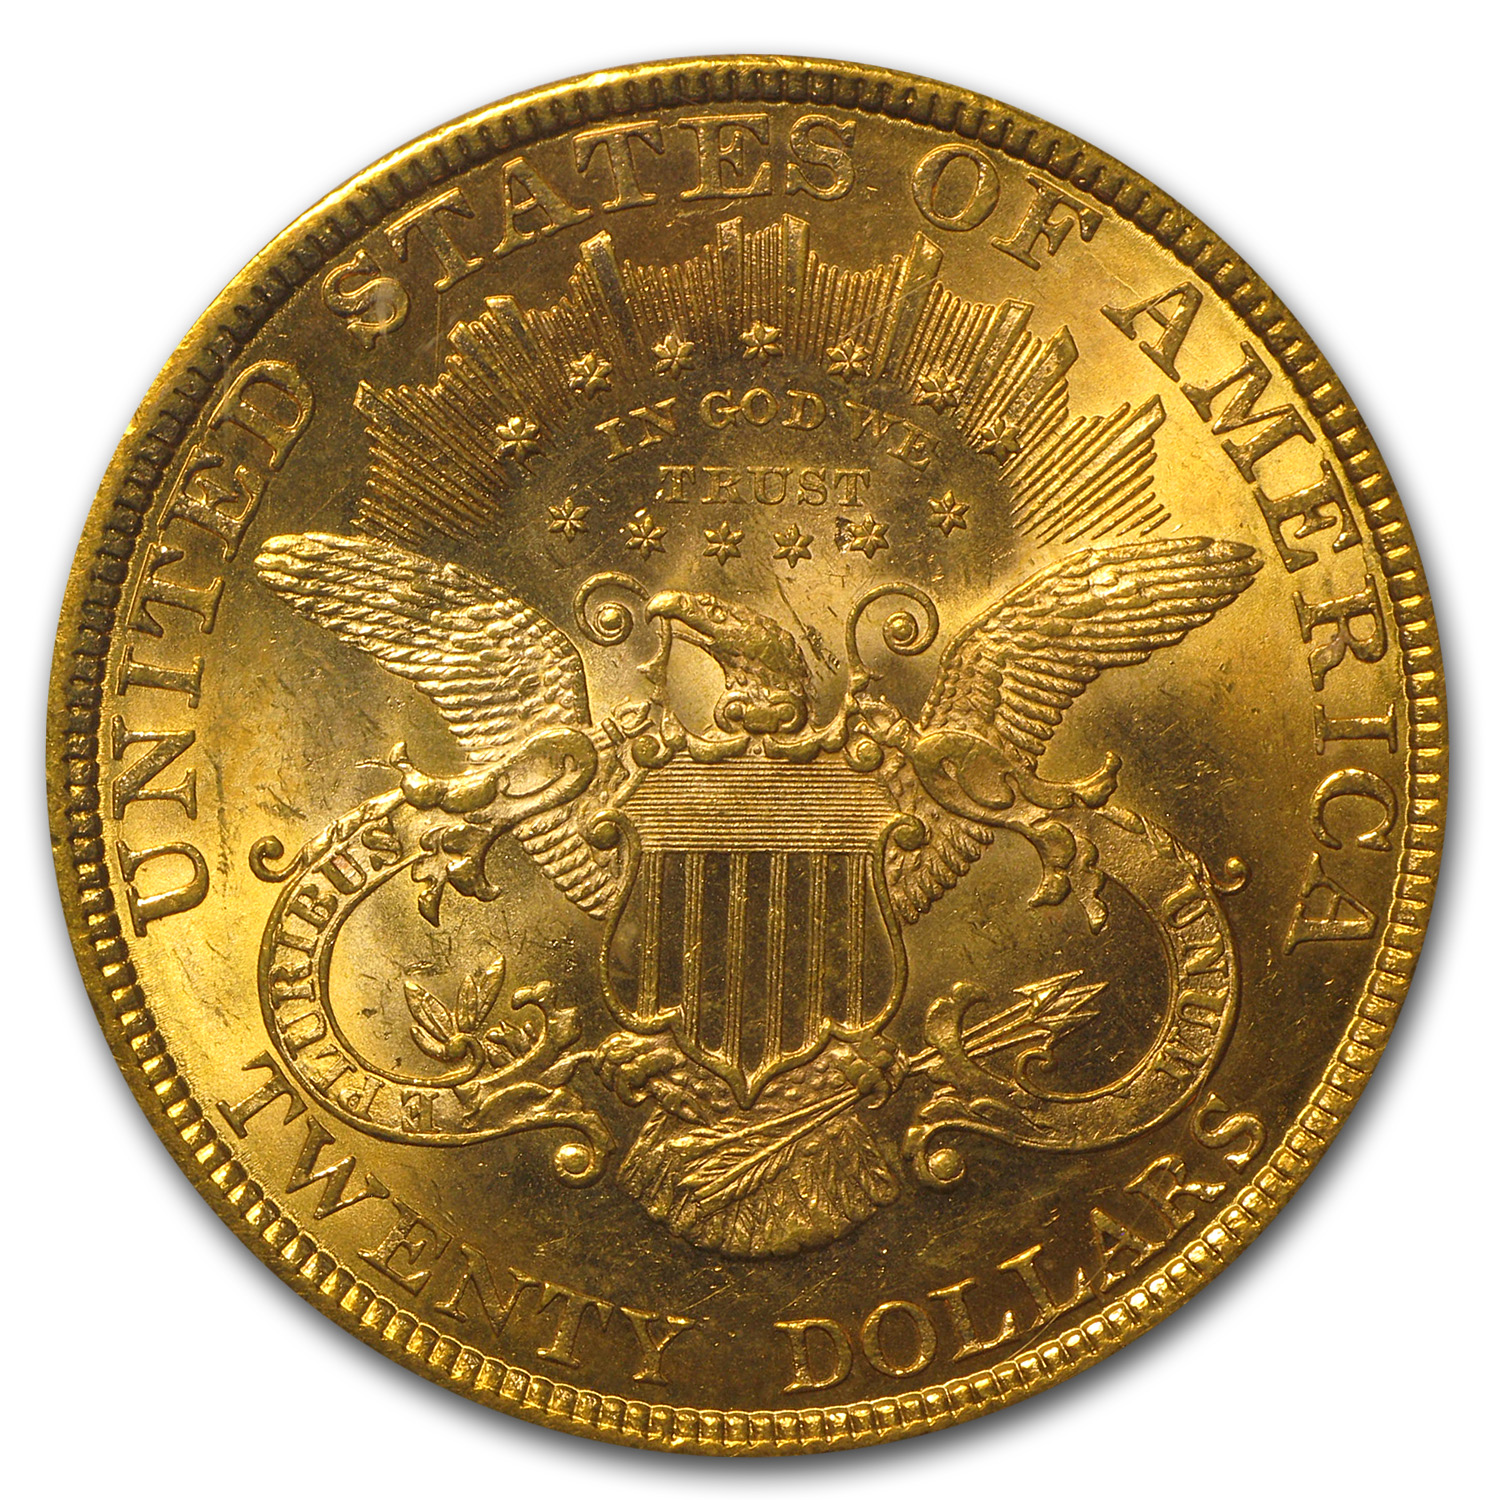 1878 $20 Gold Liberty Double Eagle - MS-62 PCGS